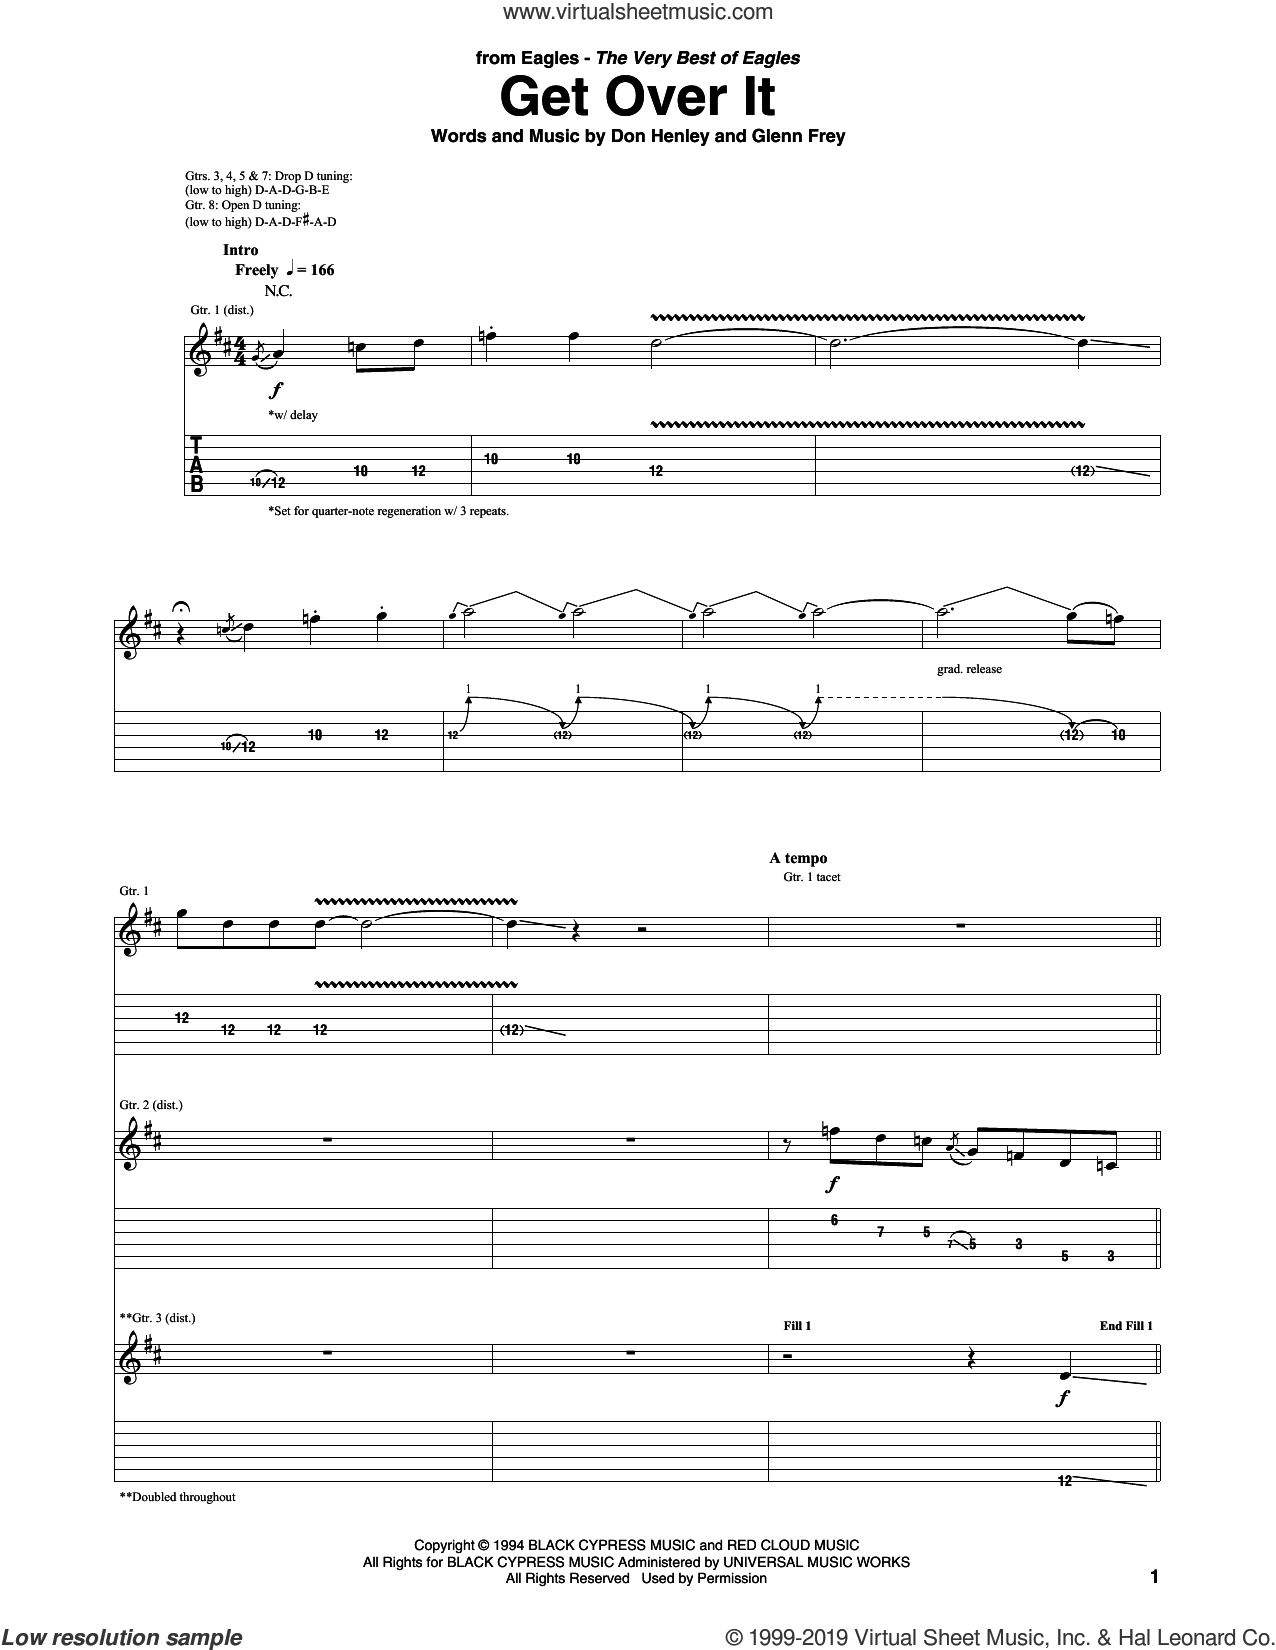 Get Over It sheet music for guitar (tablature) by Don Henley, The Eagles and Glenn Frey, intermediate skill level